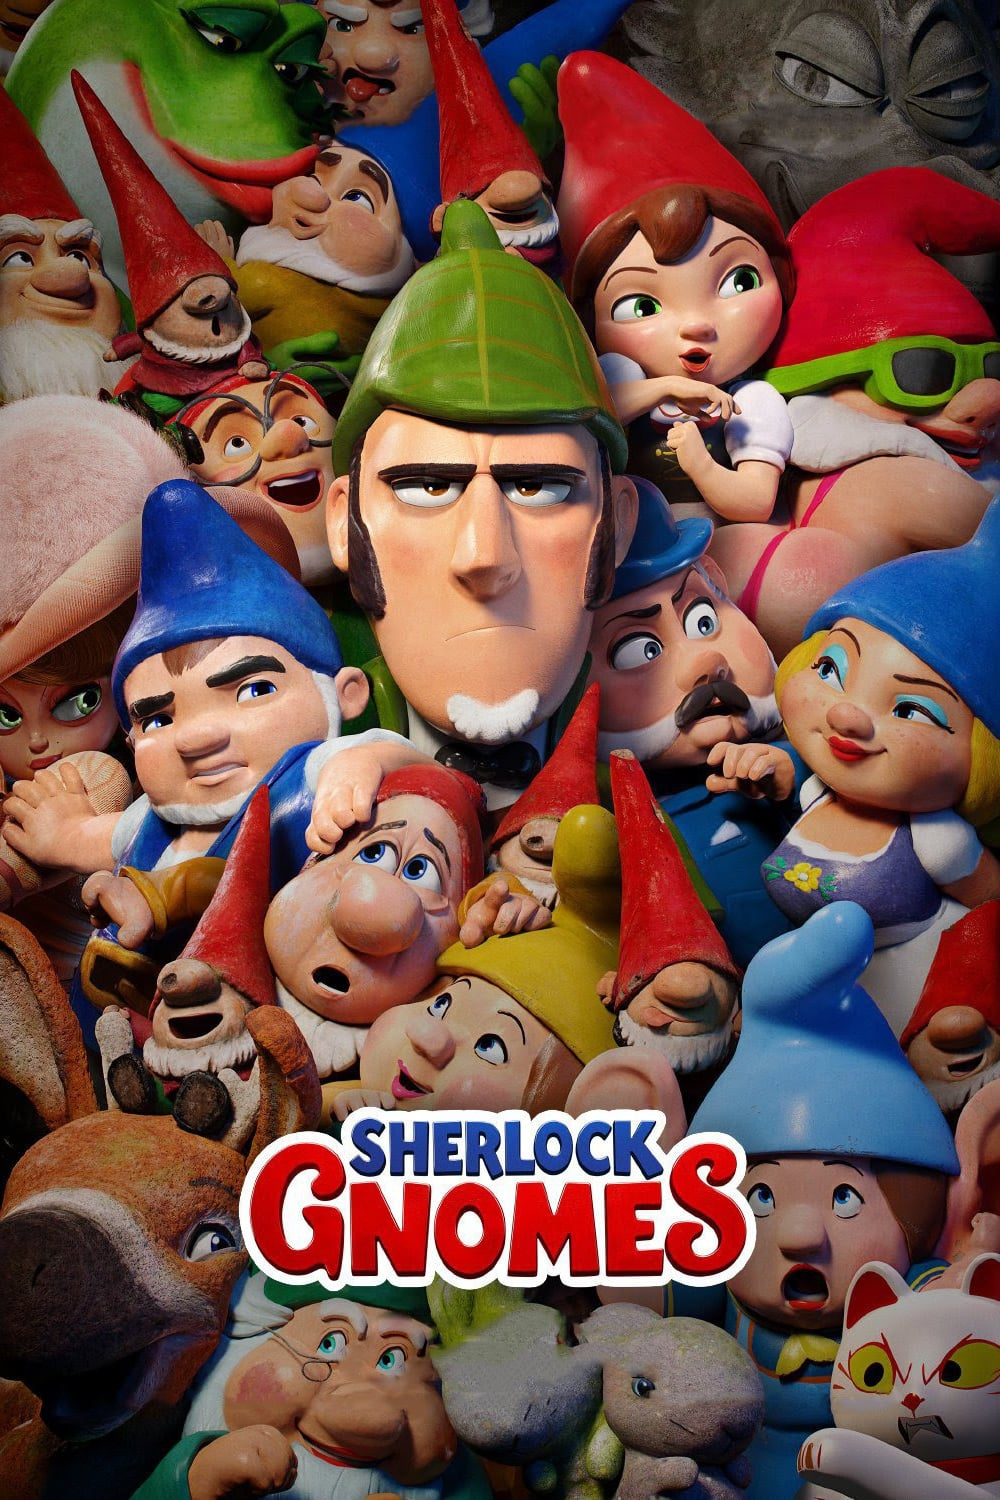 image for Sherlock Gnomes